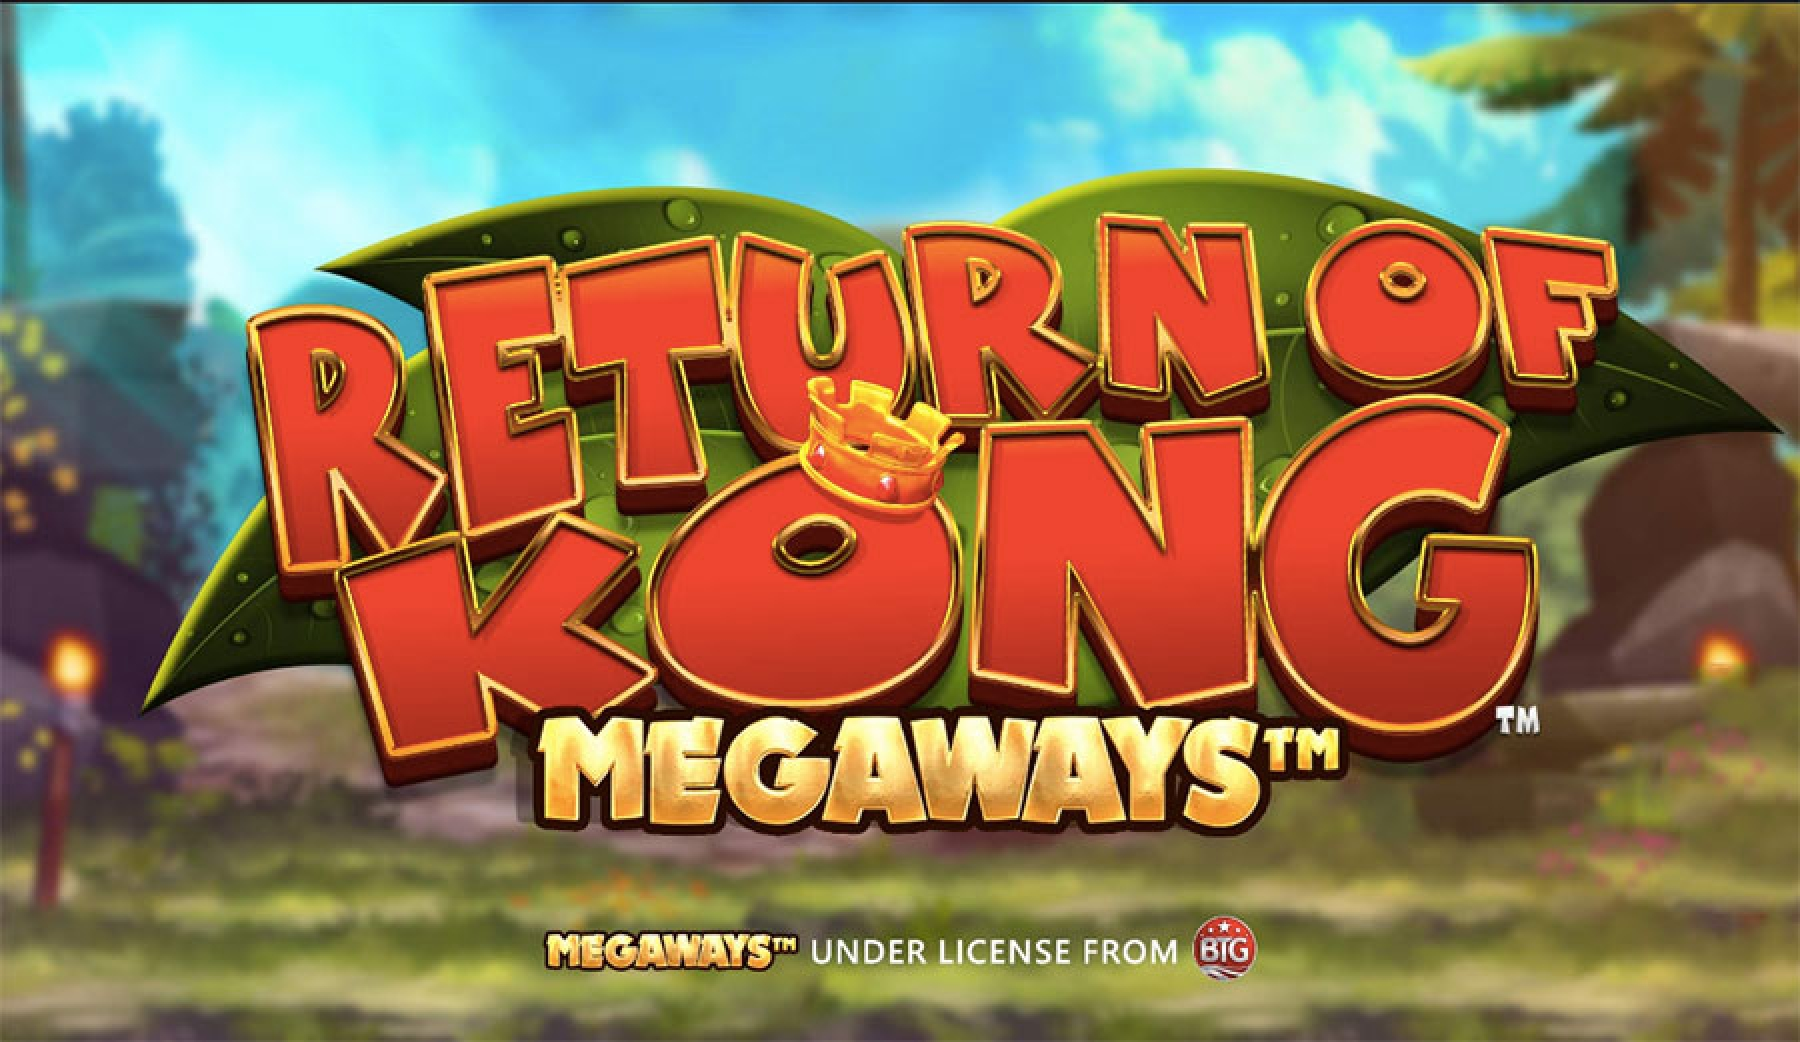 The Return of Kong Megaways Online Slot Demo Game by Blueprint Gaming